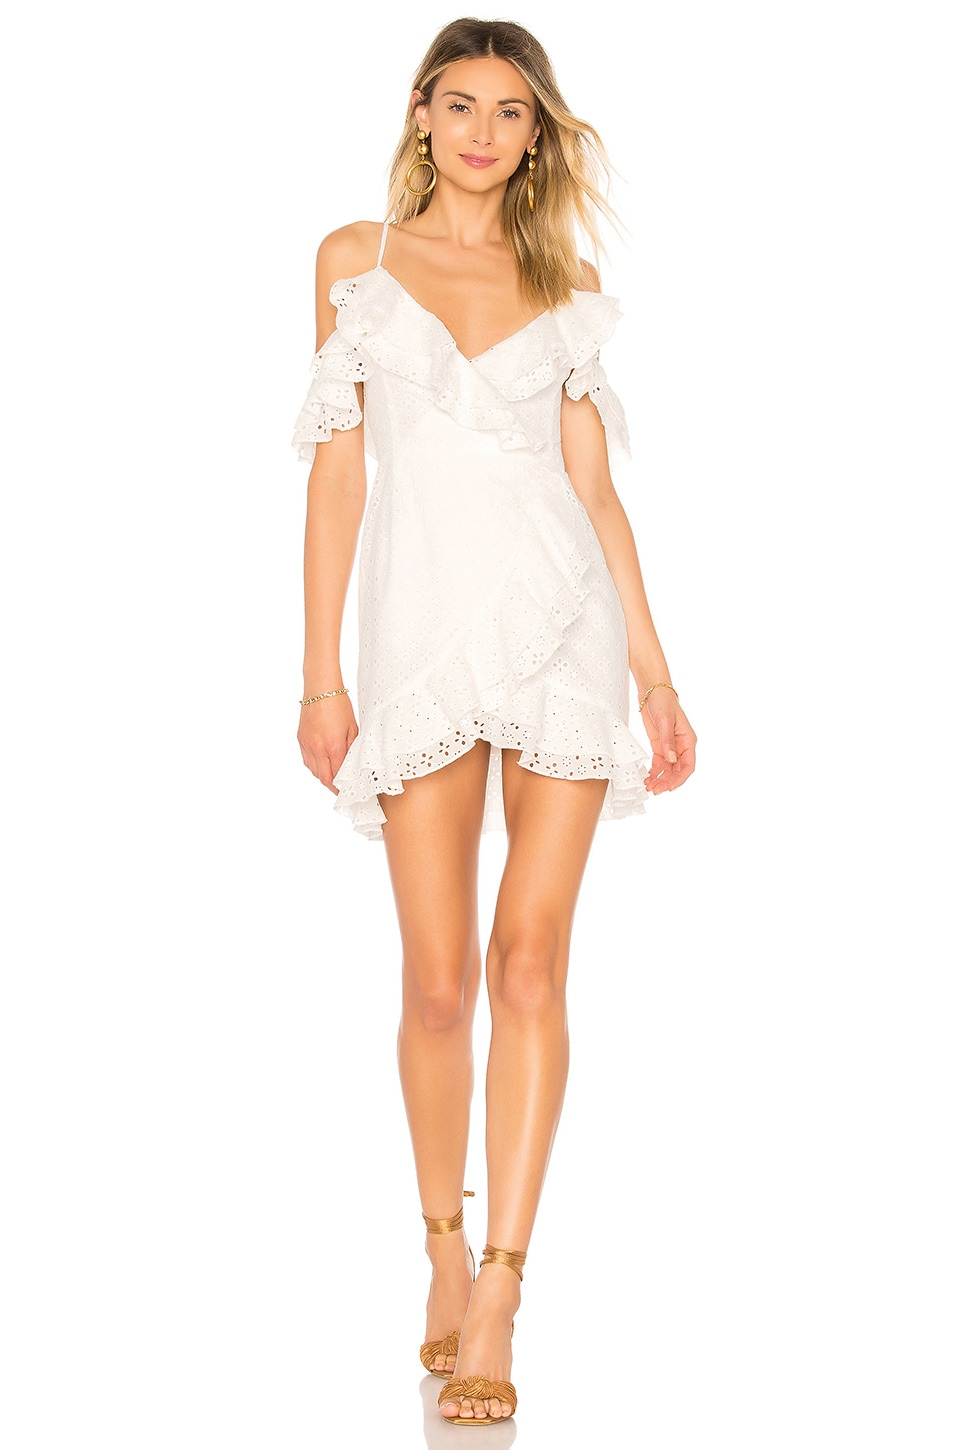 MAJORELLE Hayes Dress in White